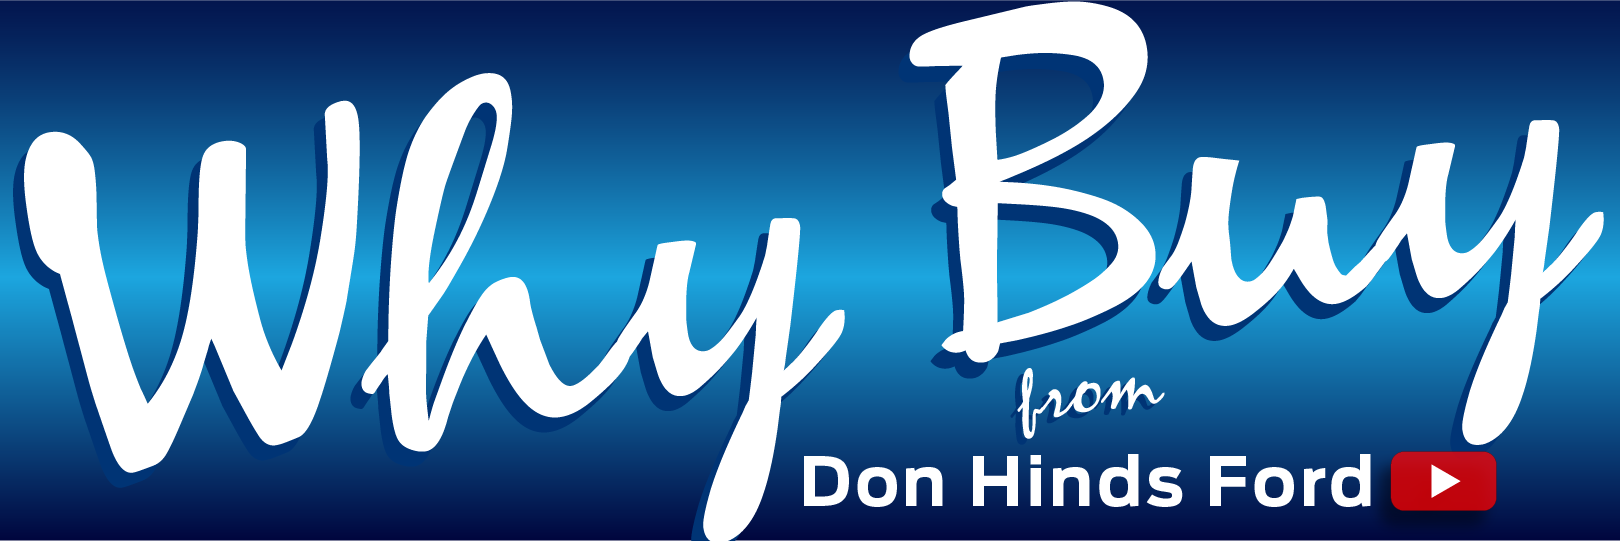 Don Hinds Ford Used Cars